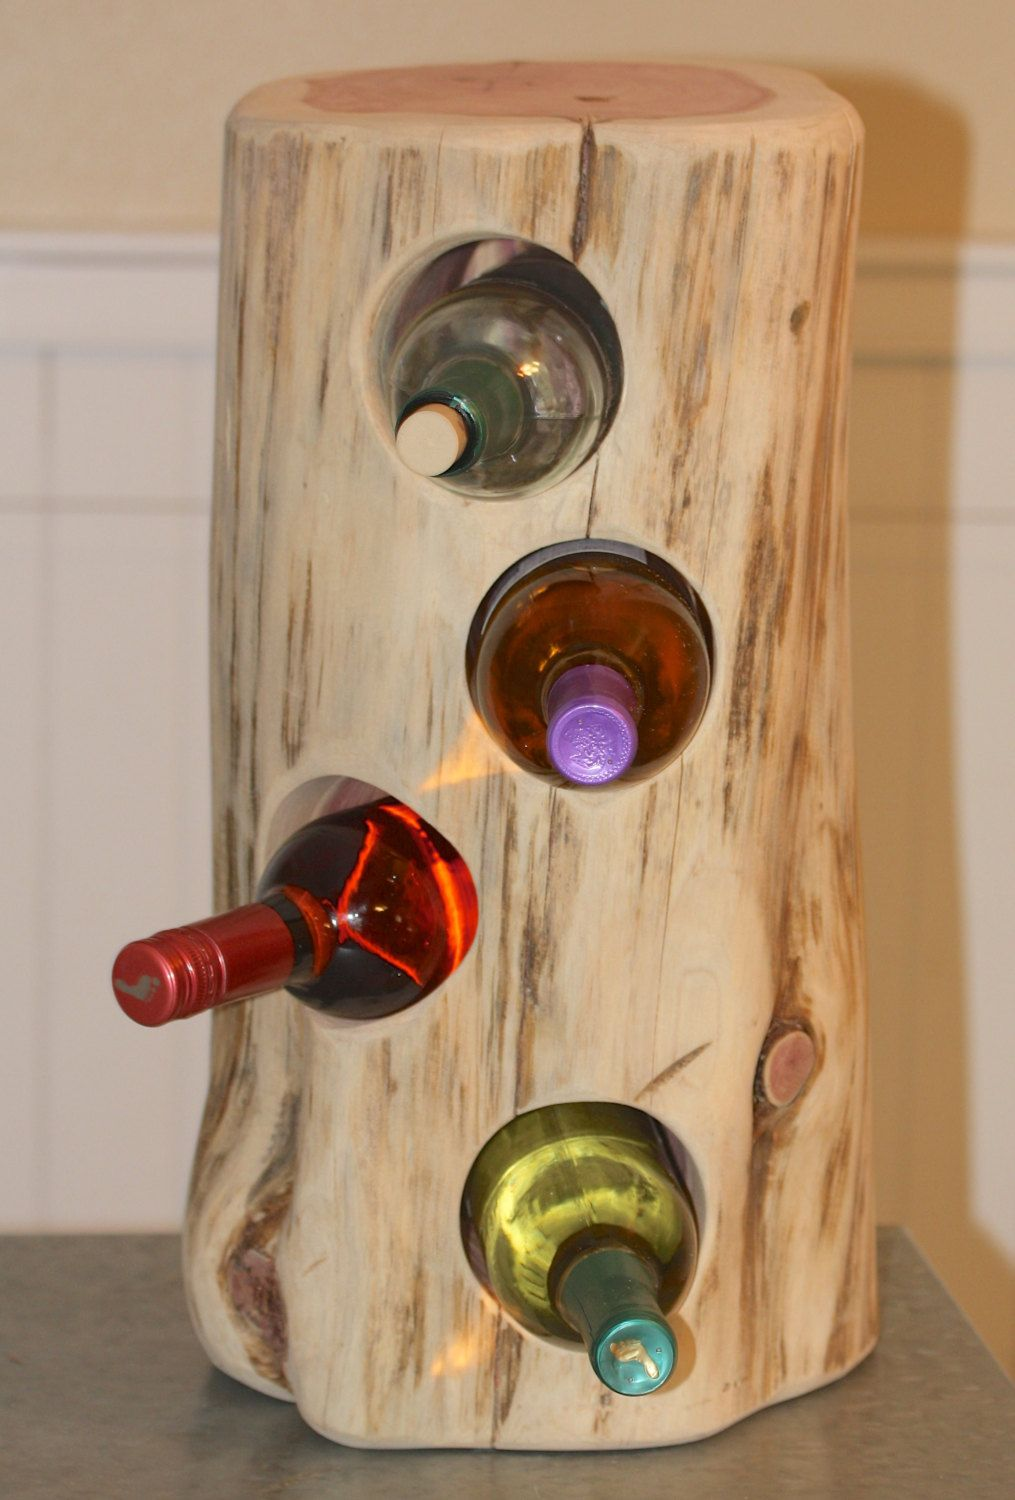 Rustic Wine Holder Cedar Tree Stump Holds 4 Bottles